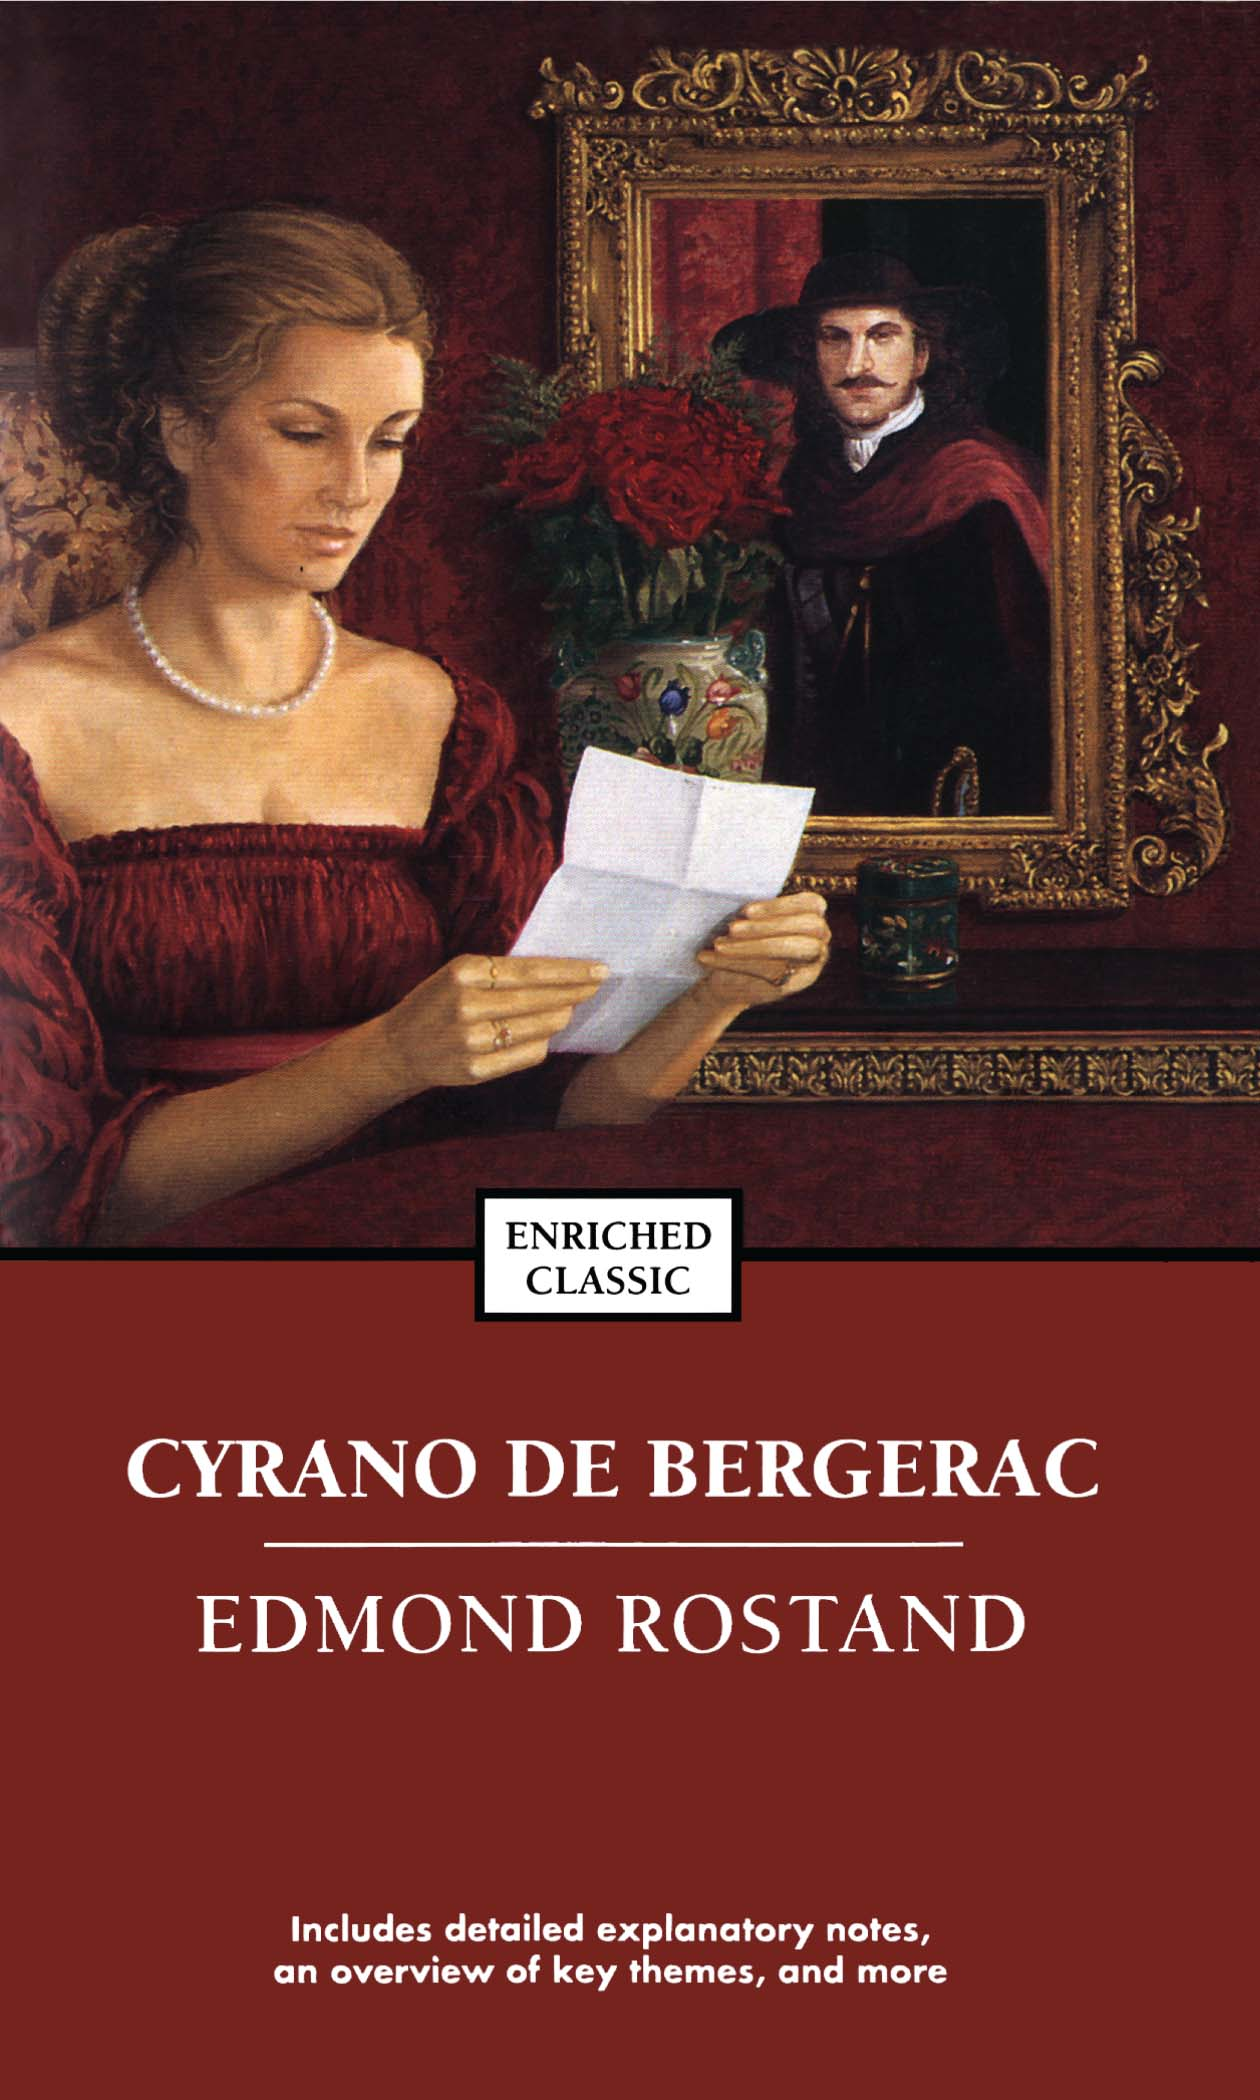 an analysis of cyrano in cyrano de bergerac by edmond rostand Plot summary of cyrano de bergerac by edmond rostand part of a free study guide by bookragscom.